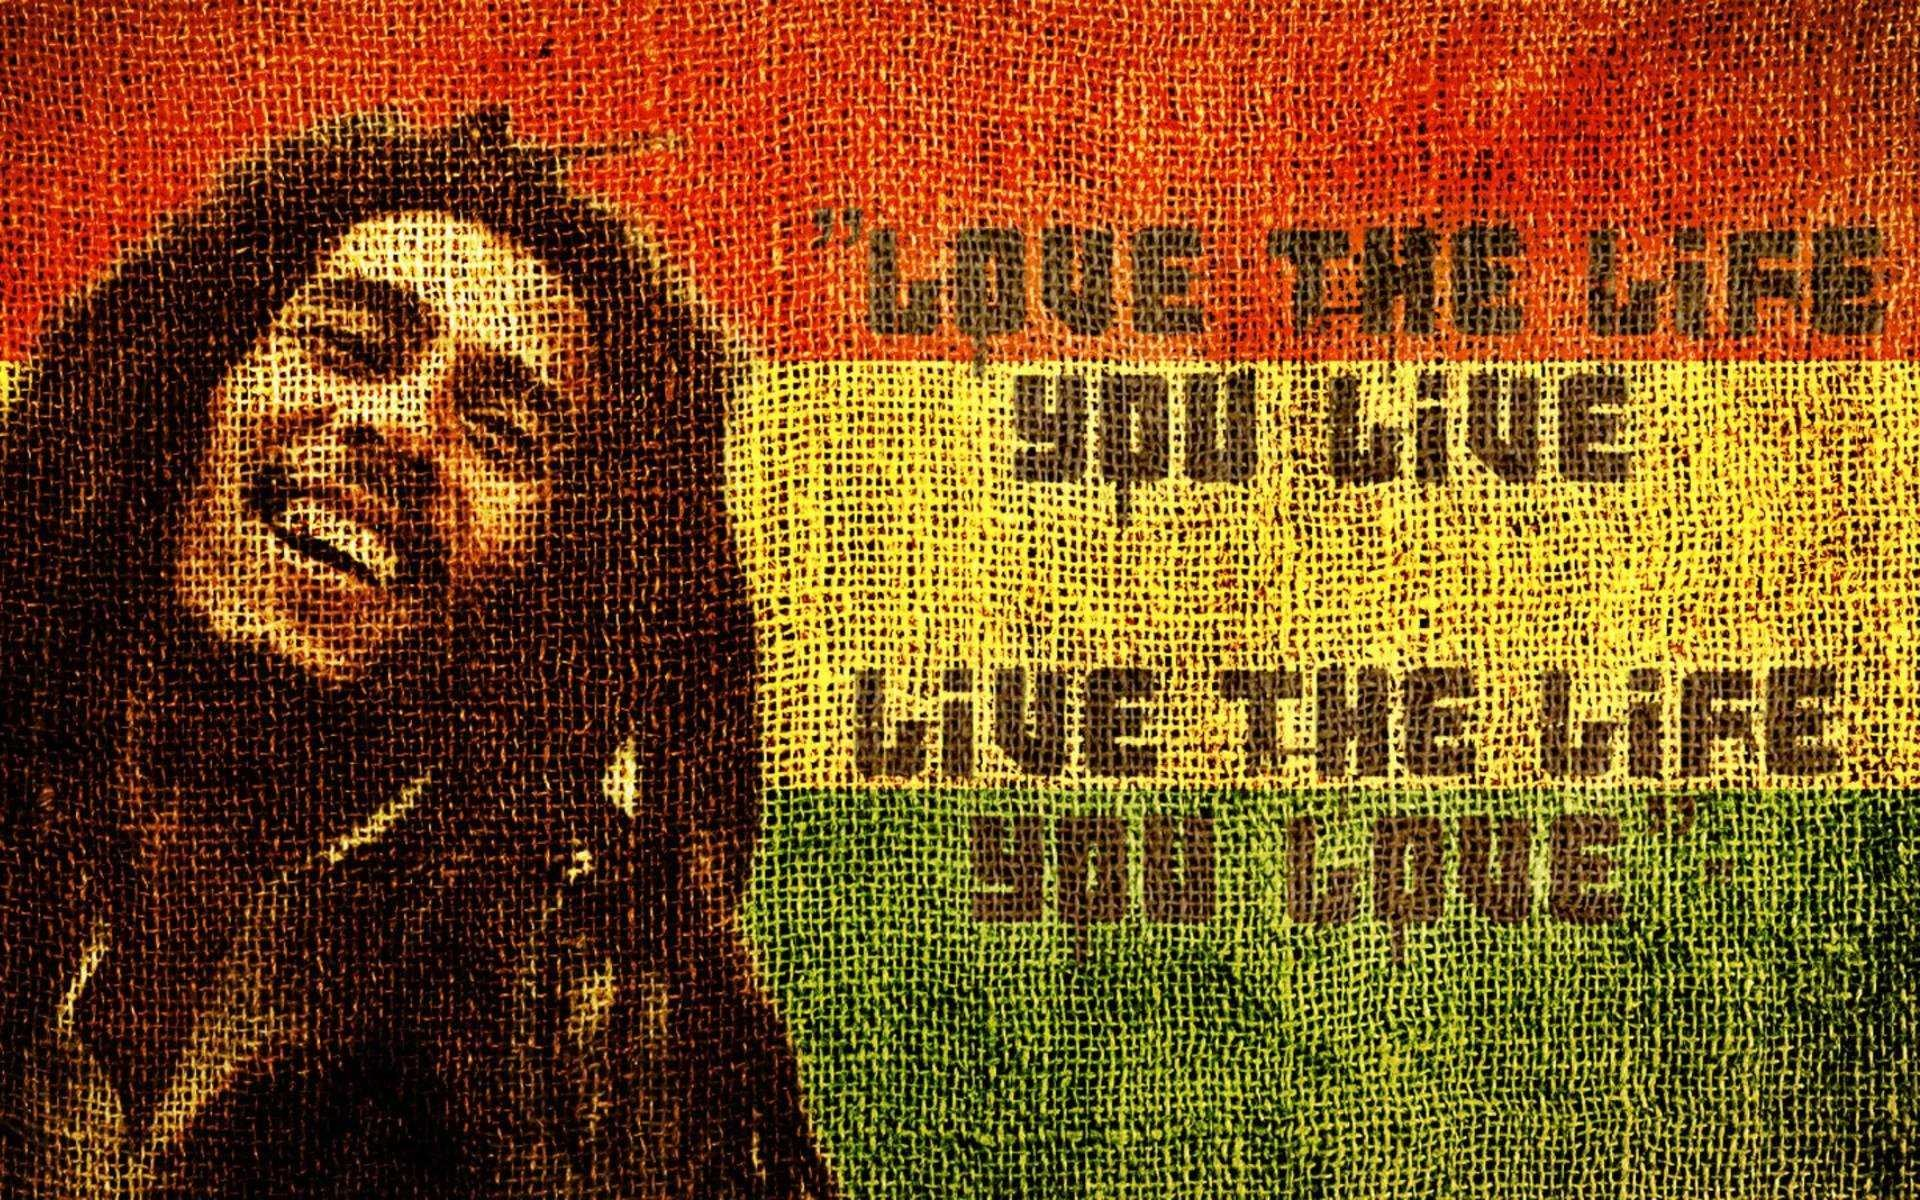 1440x900 Hd Wallpaper Source Bob Marley Weed For Mobile Many HD